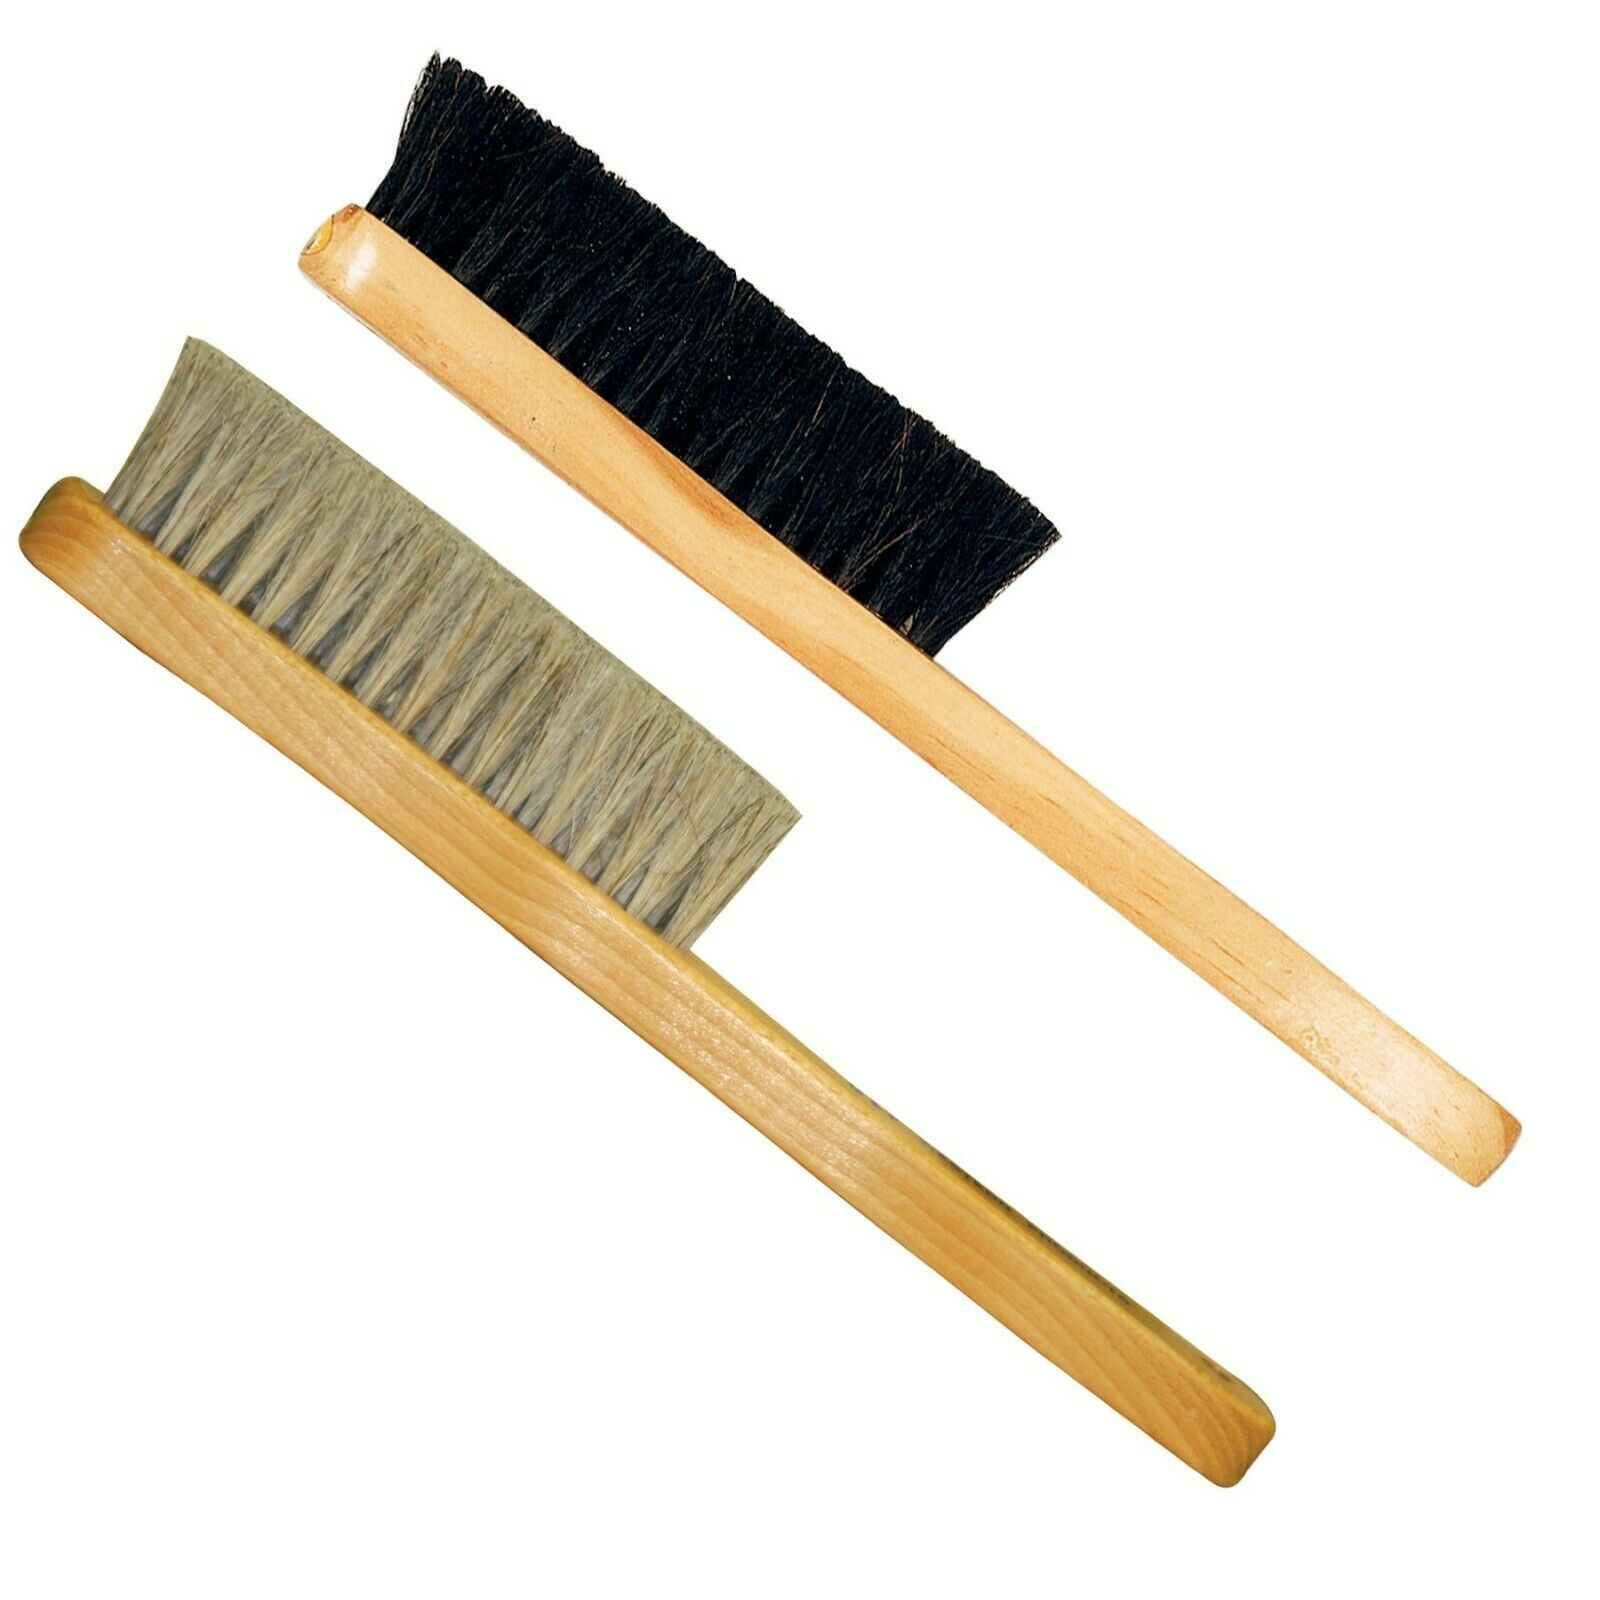 2 Wooden Hat Brushes - Dark and Light Color -Horse Hair Bristles on Wood Frame